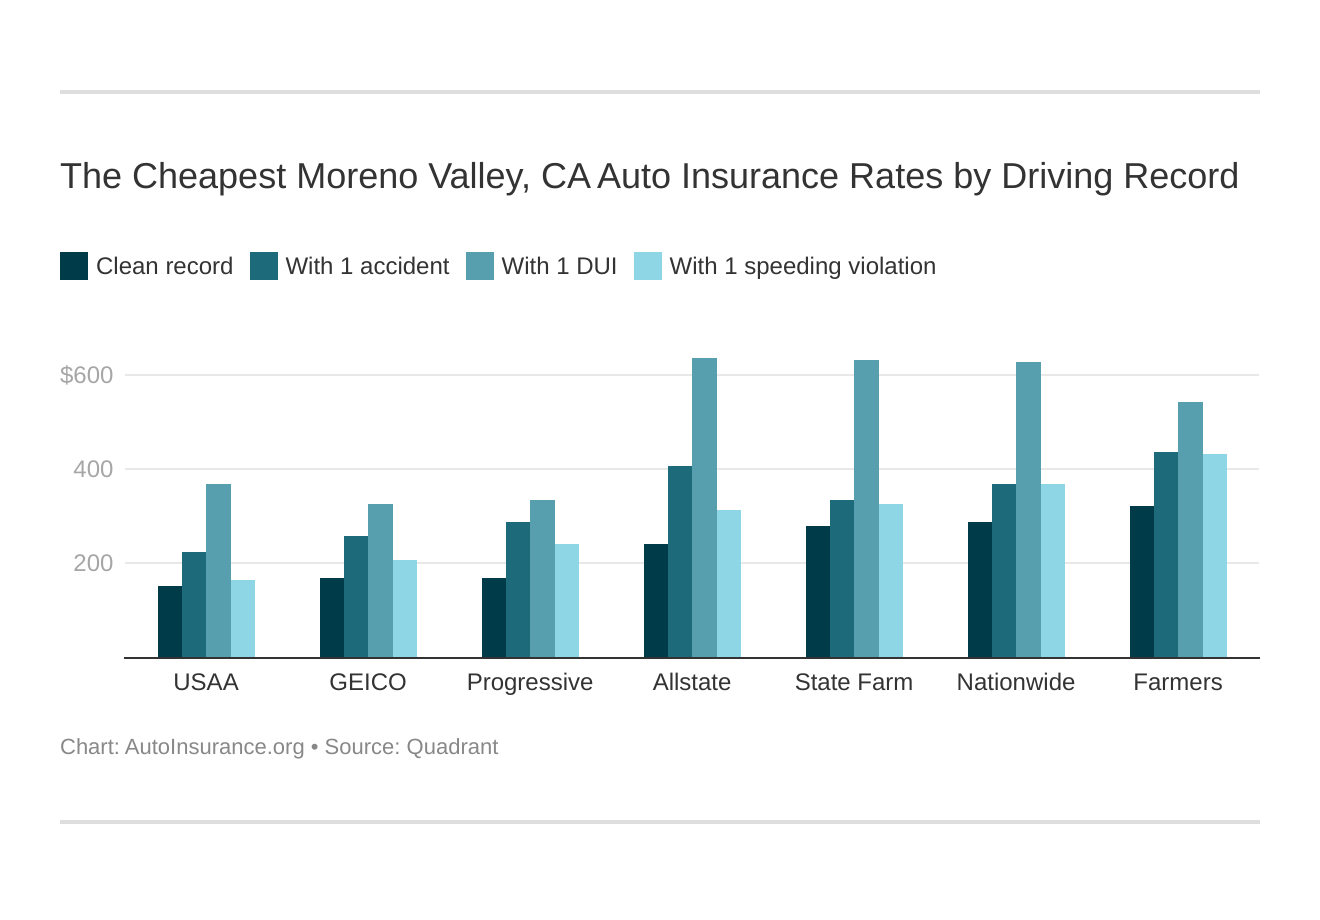 The Cheapest Moreno Valley, CA Auto Insurance Rates by Driving Record